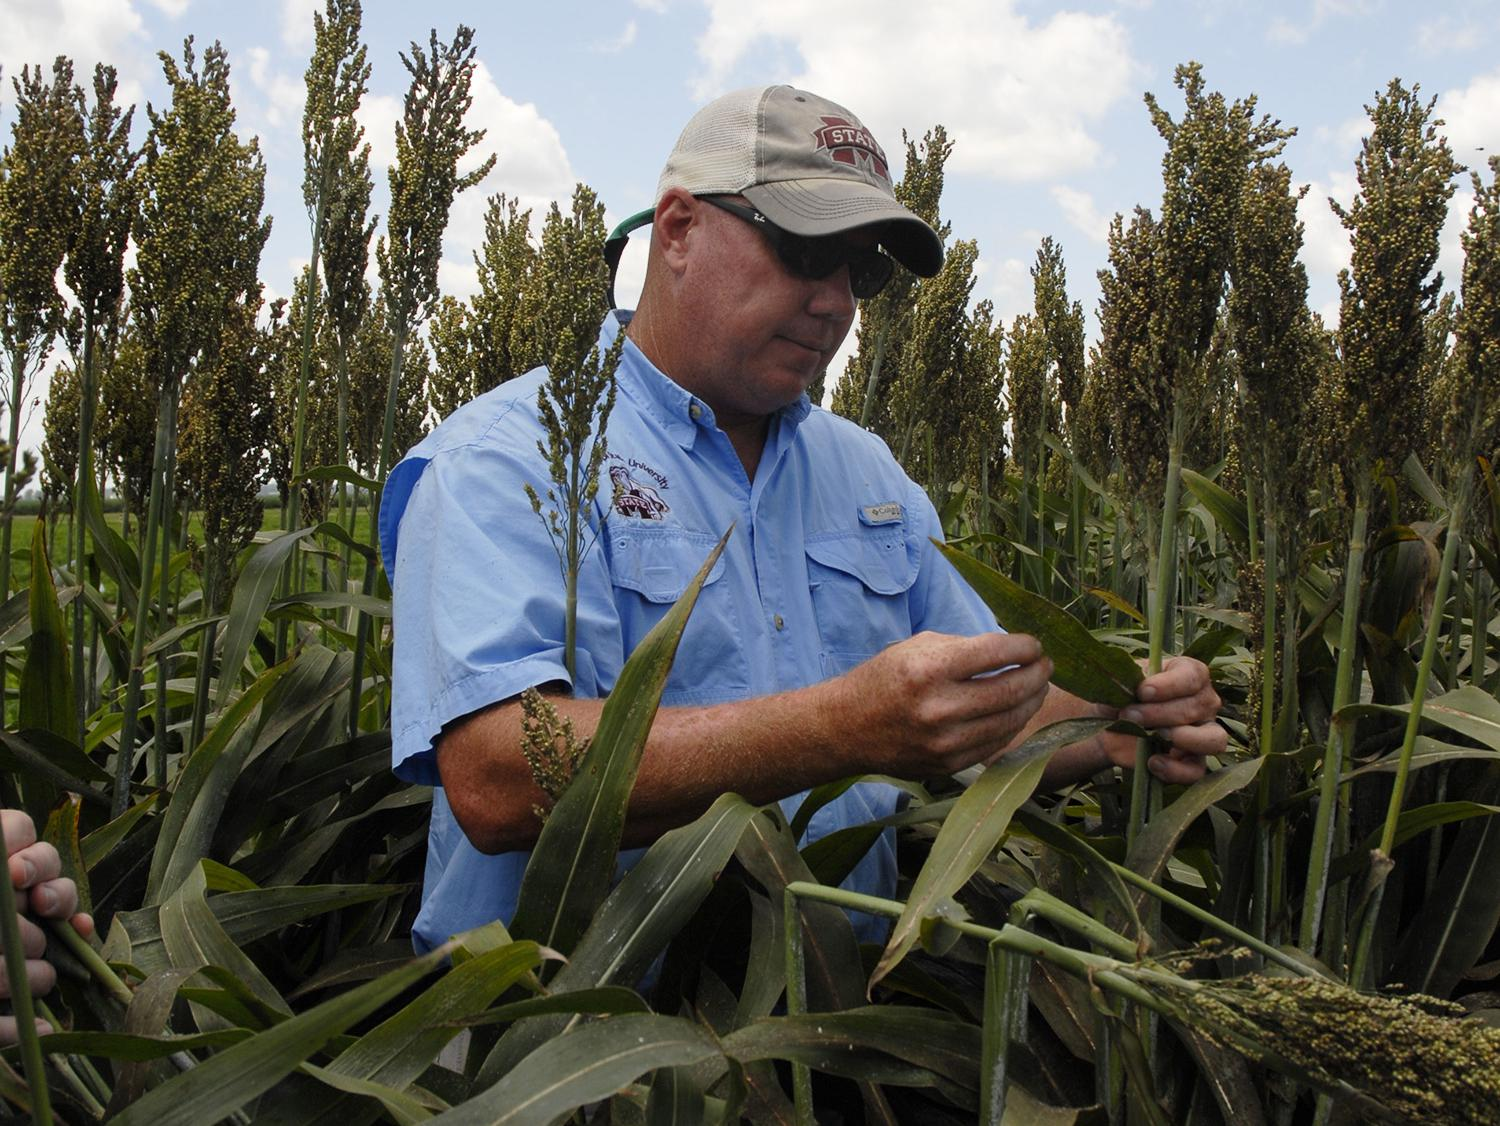 Jeff Gore, an entomology expert with the Mississippi State University Extension Service and the Mississippi Agricultural and Forestry Experiment Station, surveys white sugarcane aphid damage in a grain sorghum research plot near Stoneville, Mississippi, on Aug. 13, 2014. (Photo by MSU Ag Communications/Bonnie Coblentz)